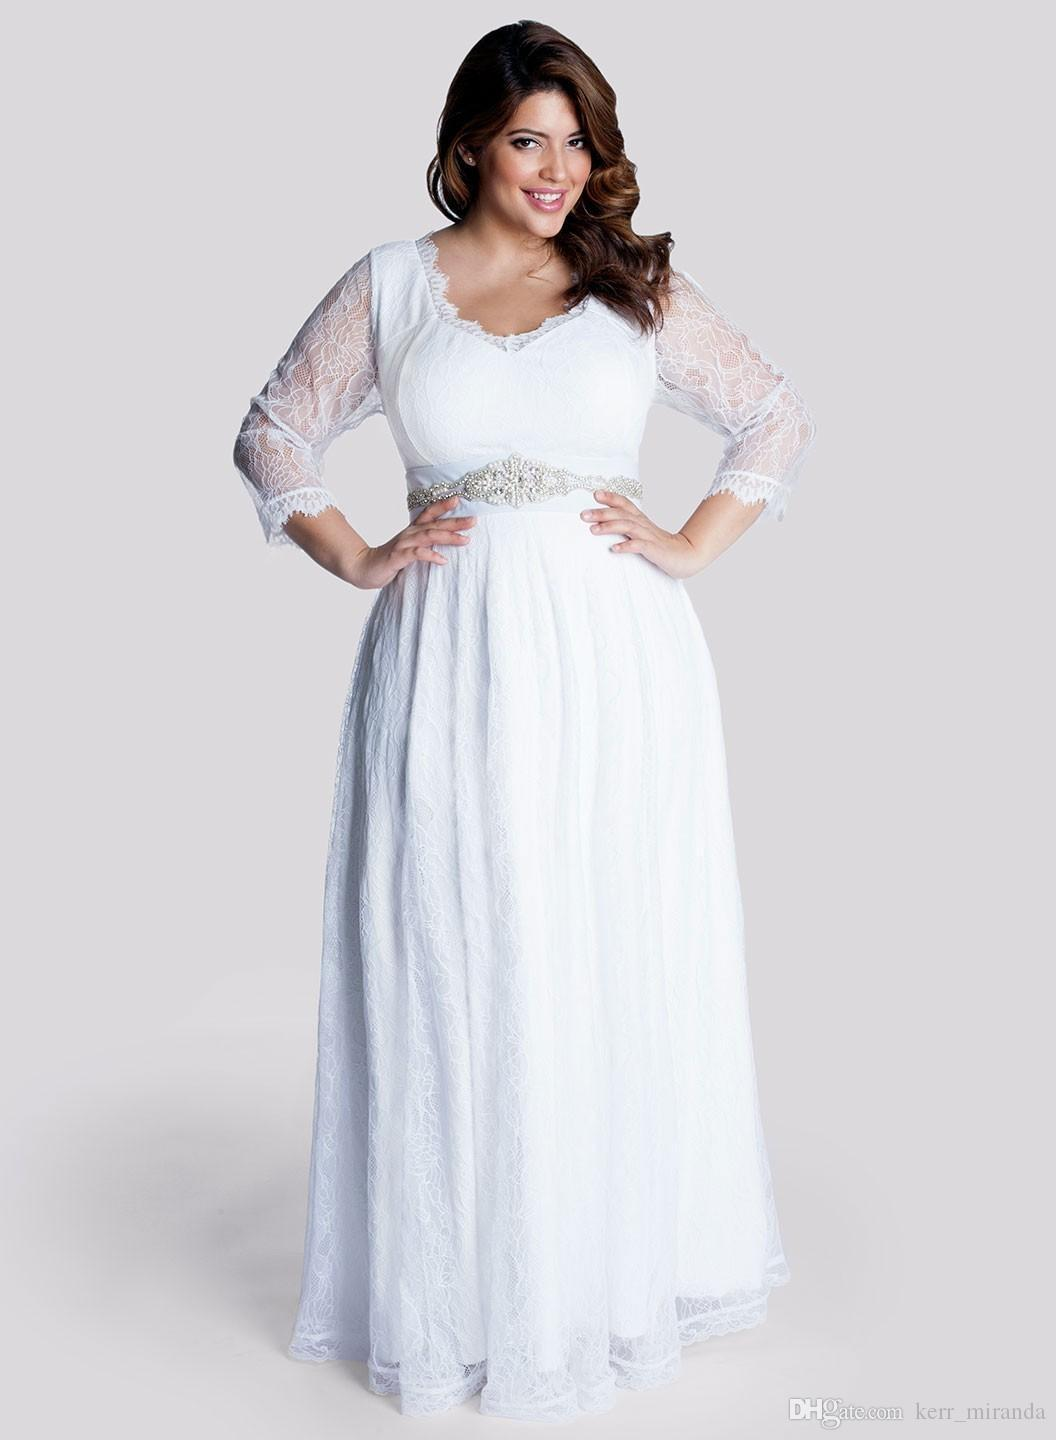 Plus Size White Dresses For Bridal Shower – DACC